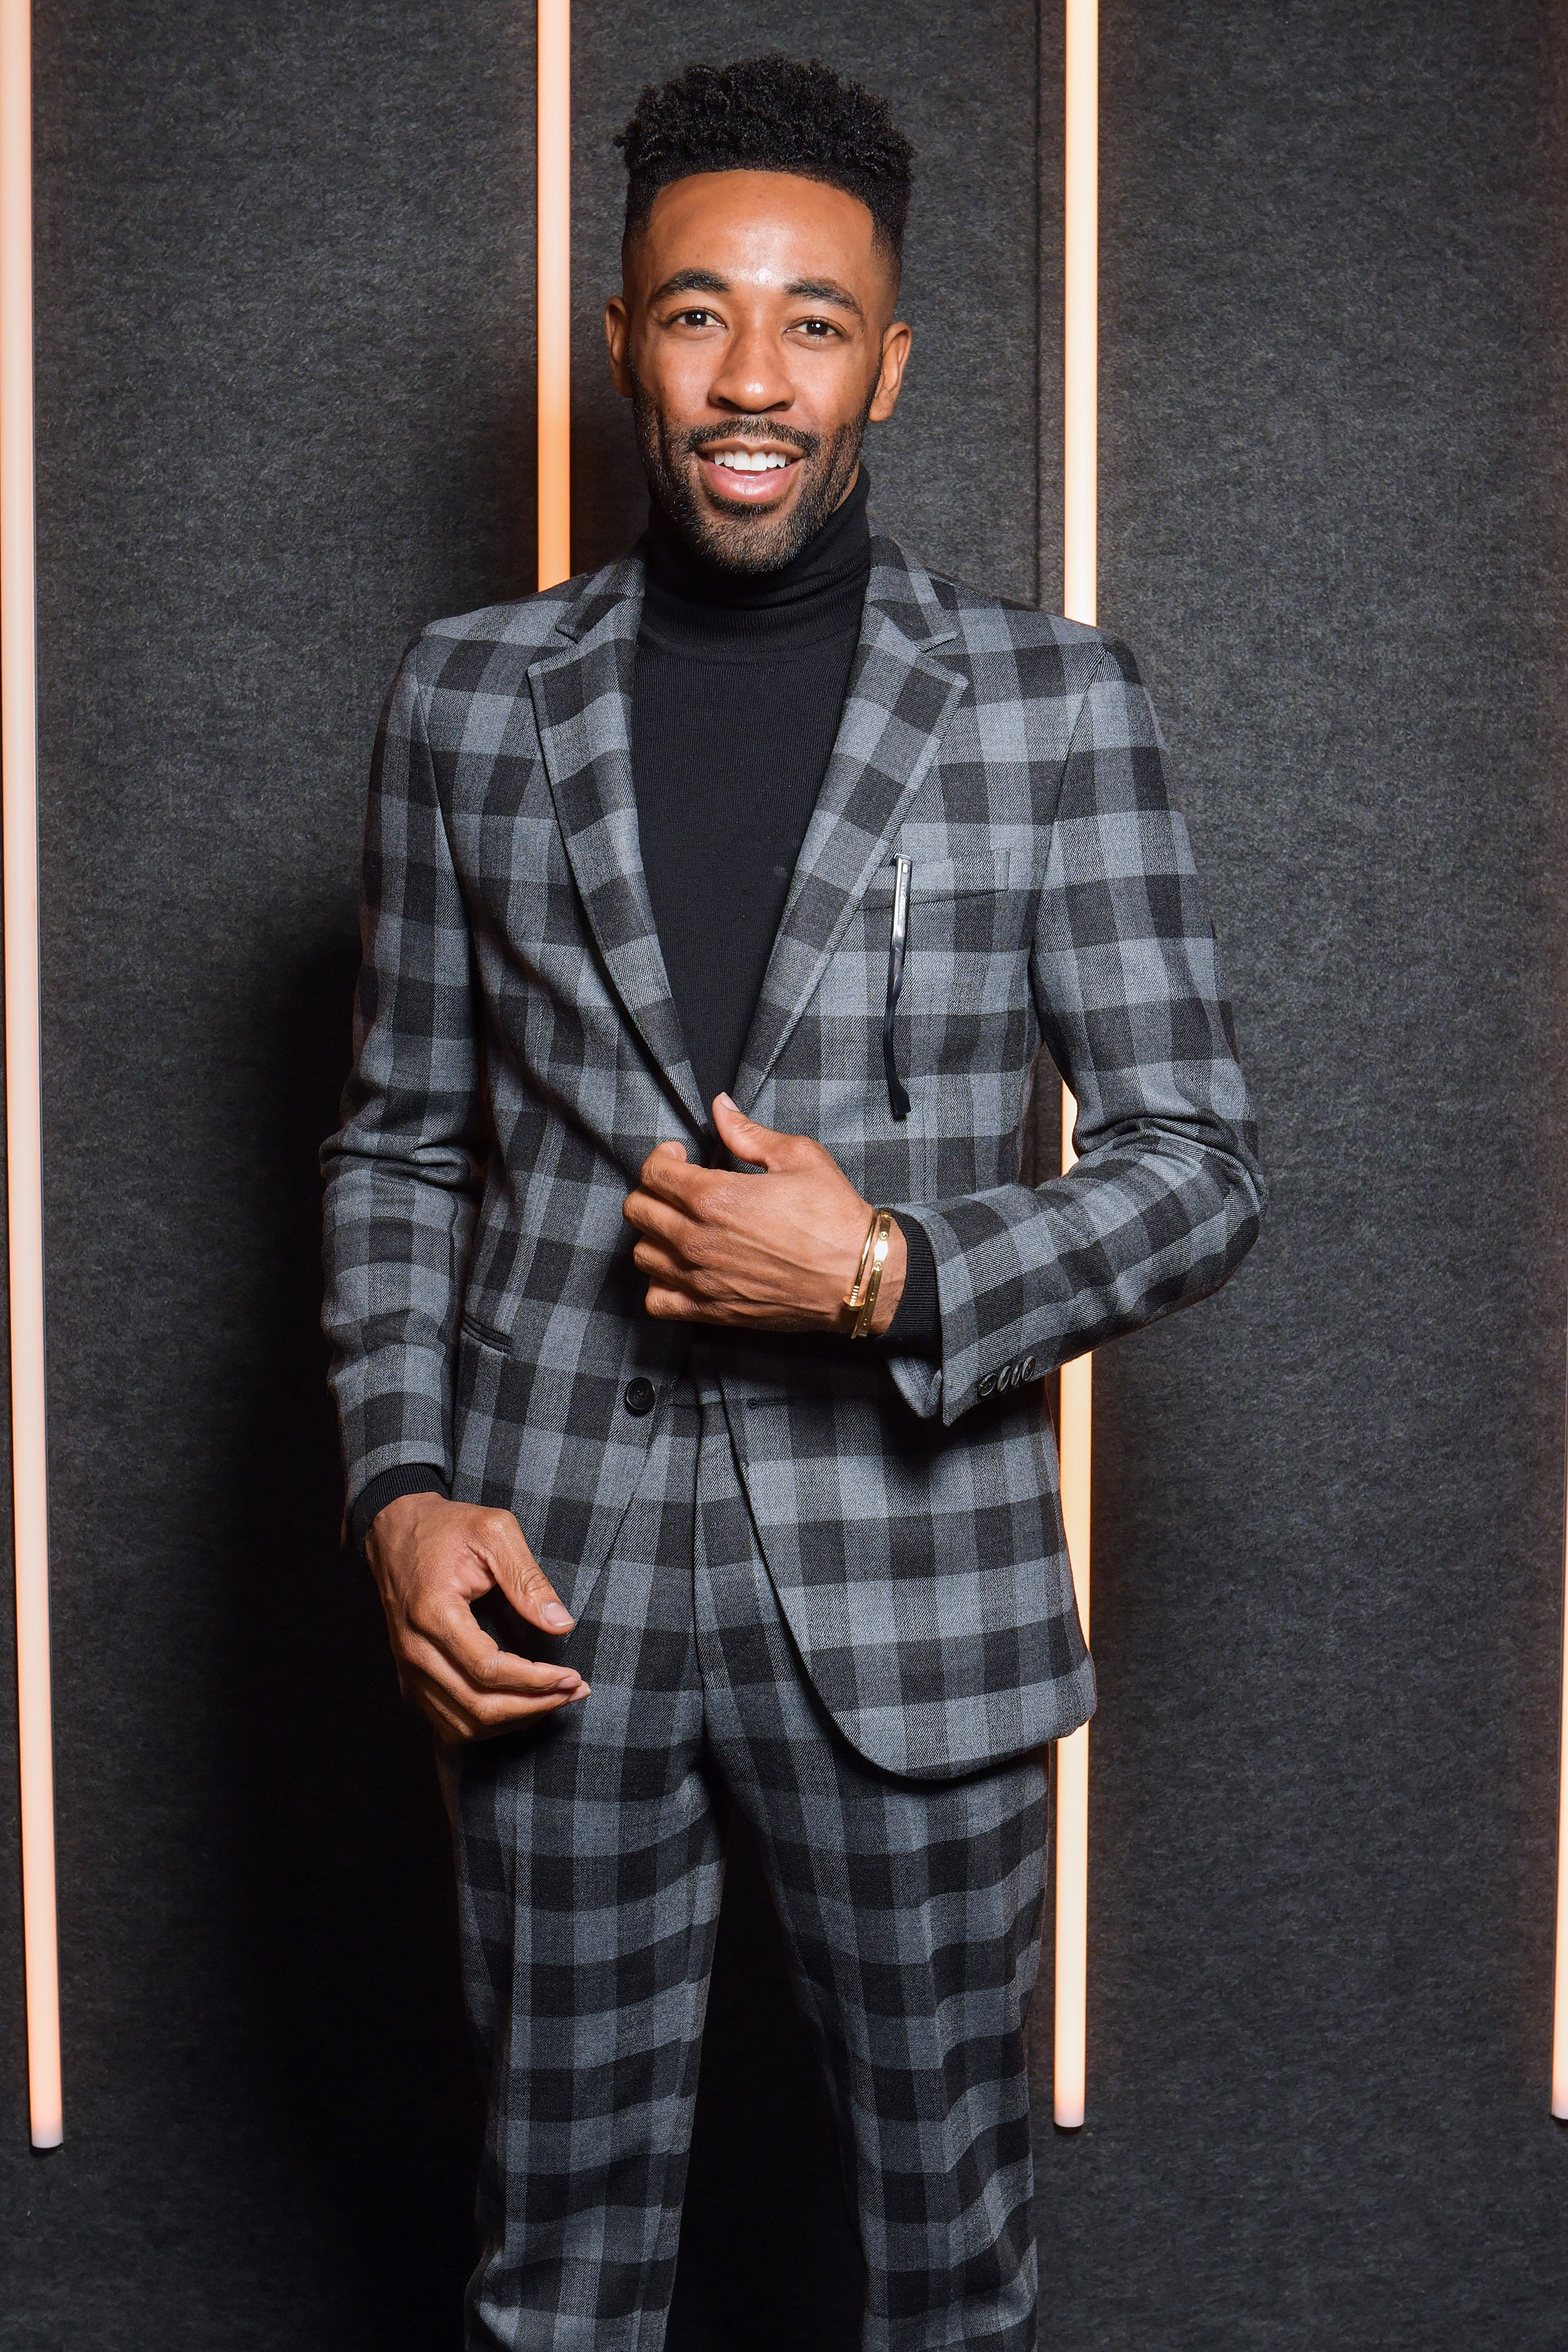 Ryan Clark backstage at the BOSS Fall/Winter 2019 show at Basketball City during New York Fashion Week on Wednesday, February 13, in New York City. Photography, Courtesy of BOSS.